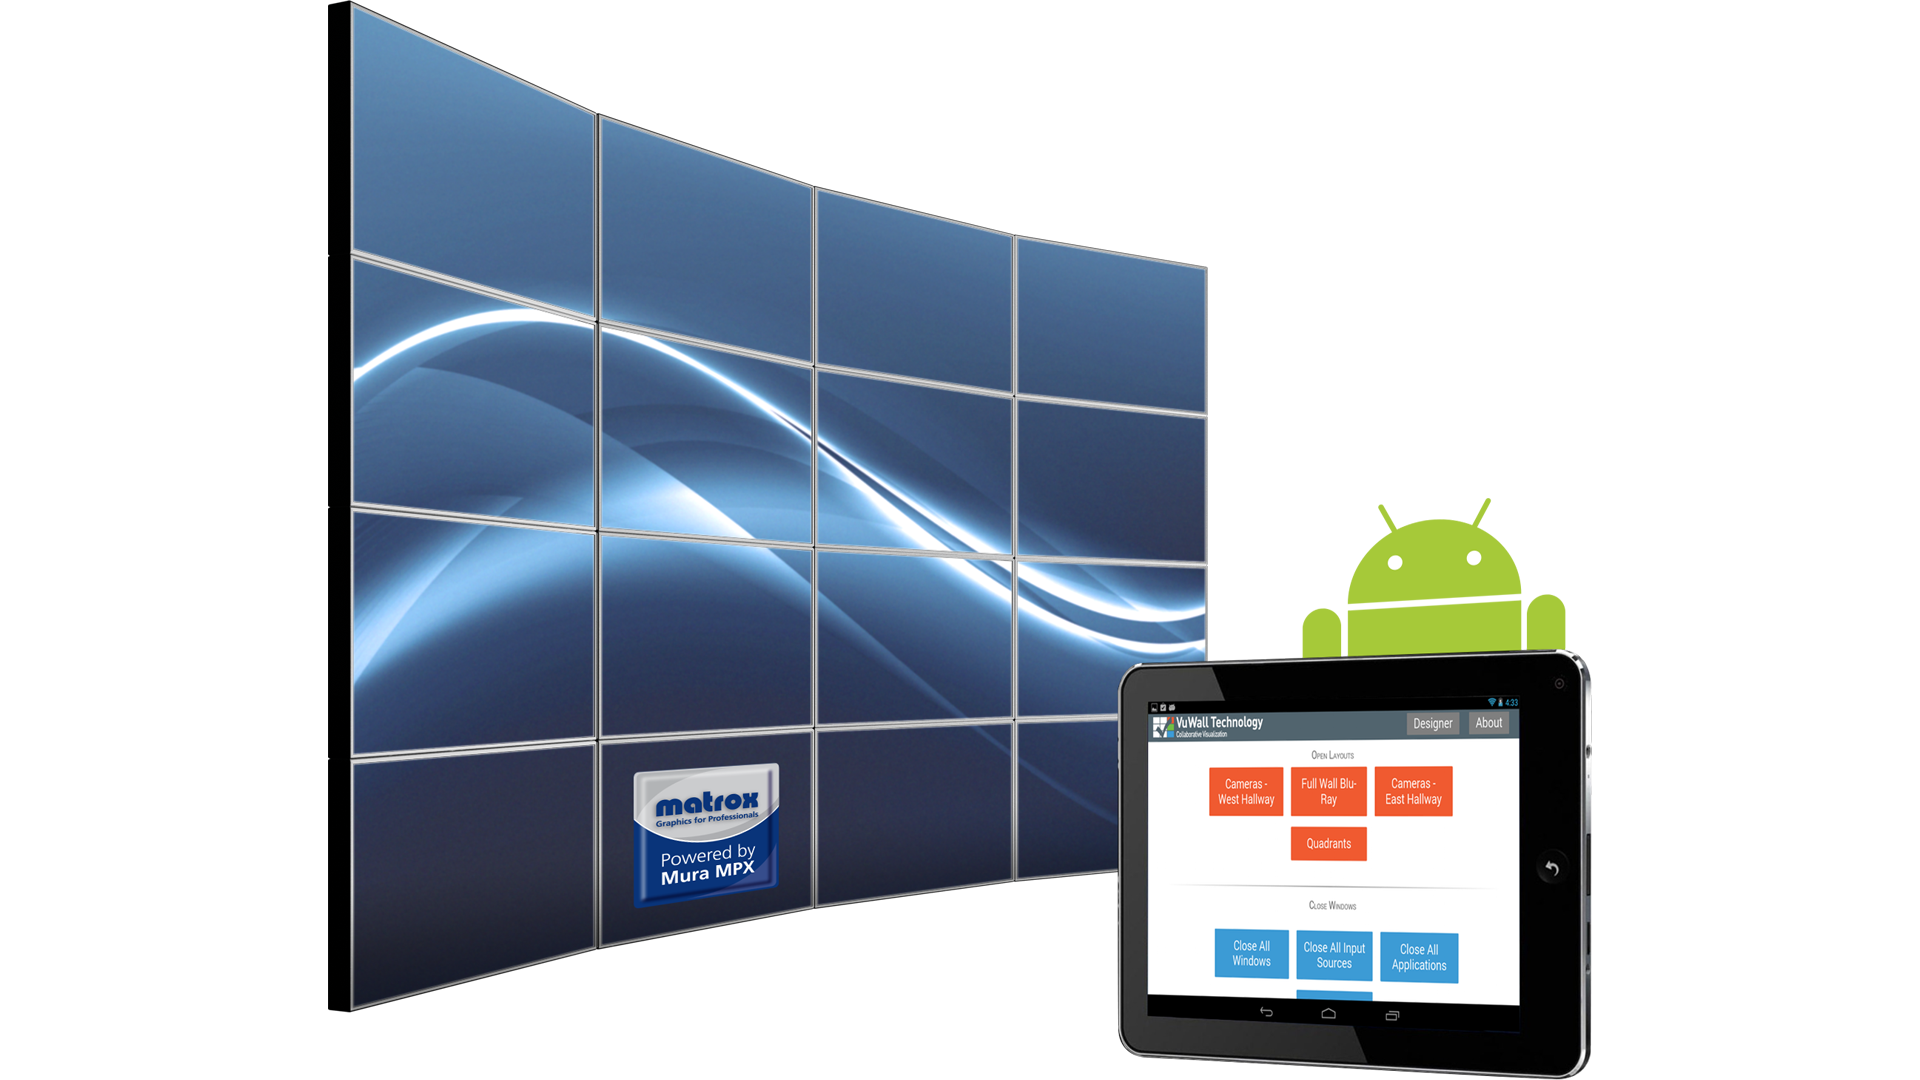 Android App from VuWall Technology Offers New Control Option for Matrox Mura-powered Video Walls